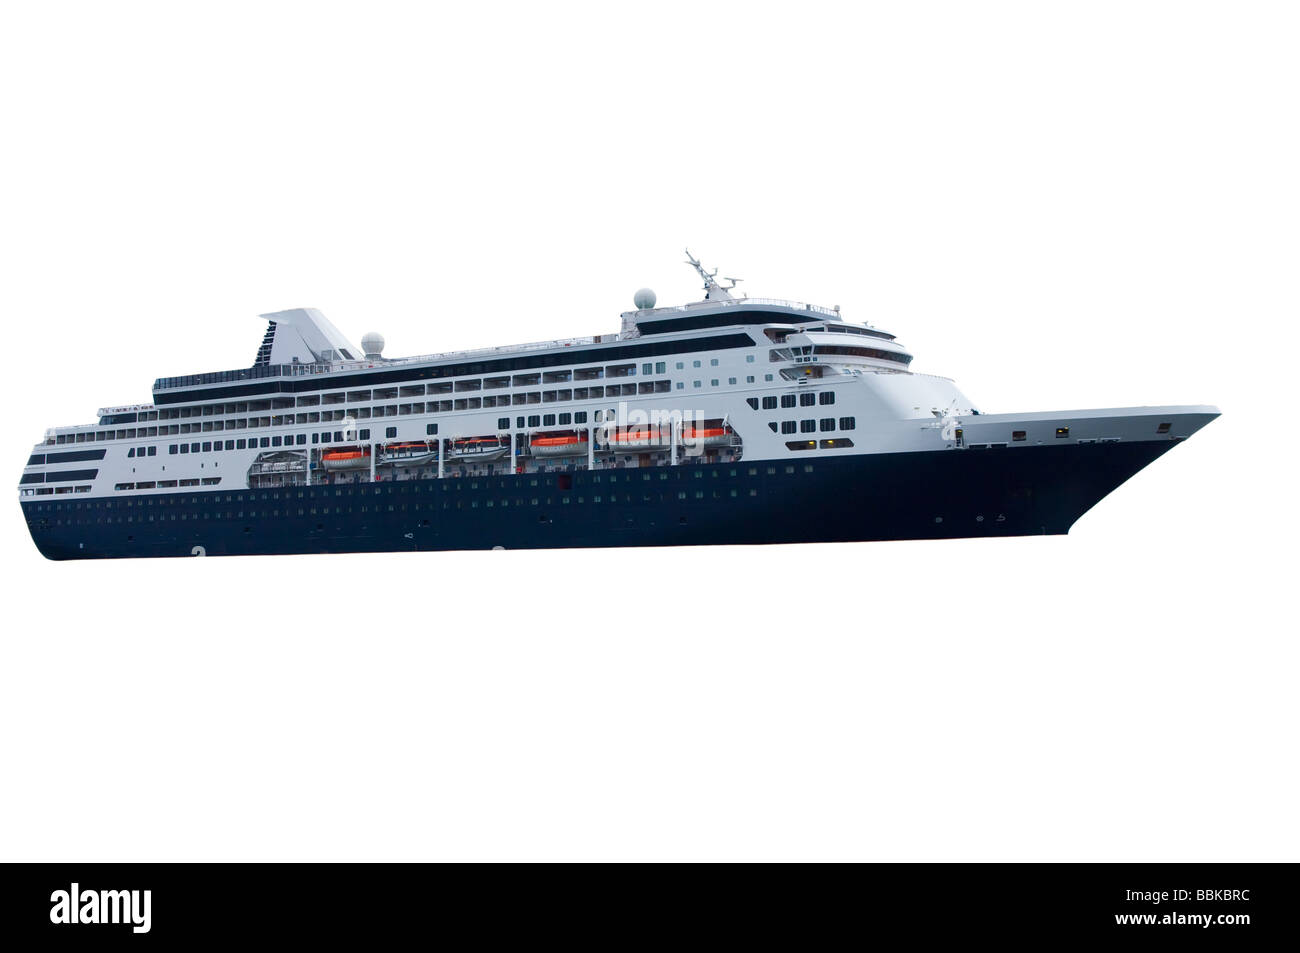 Cruise Ship with blue hull color - Stock Image